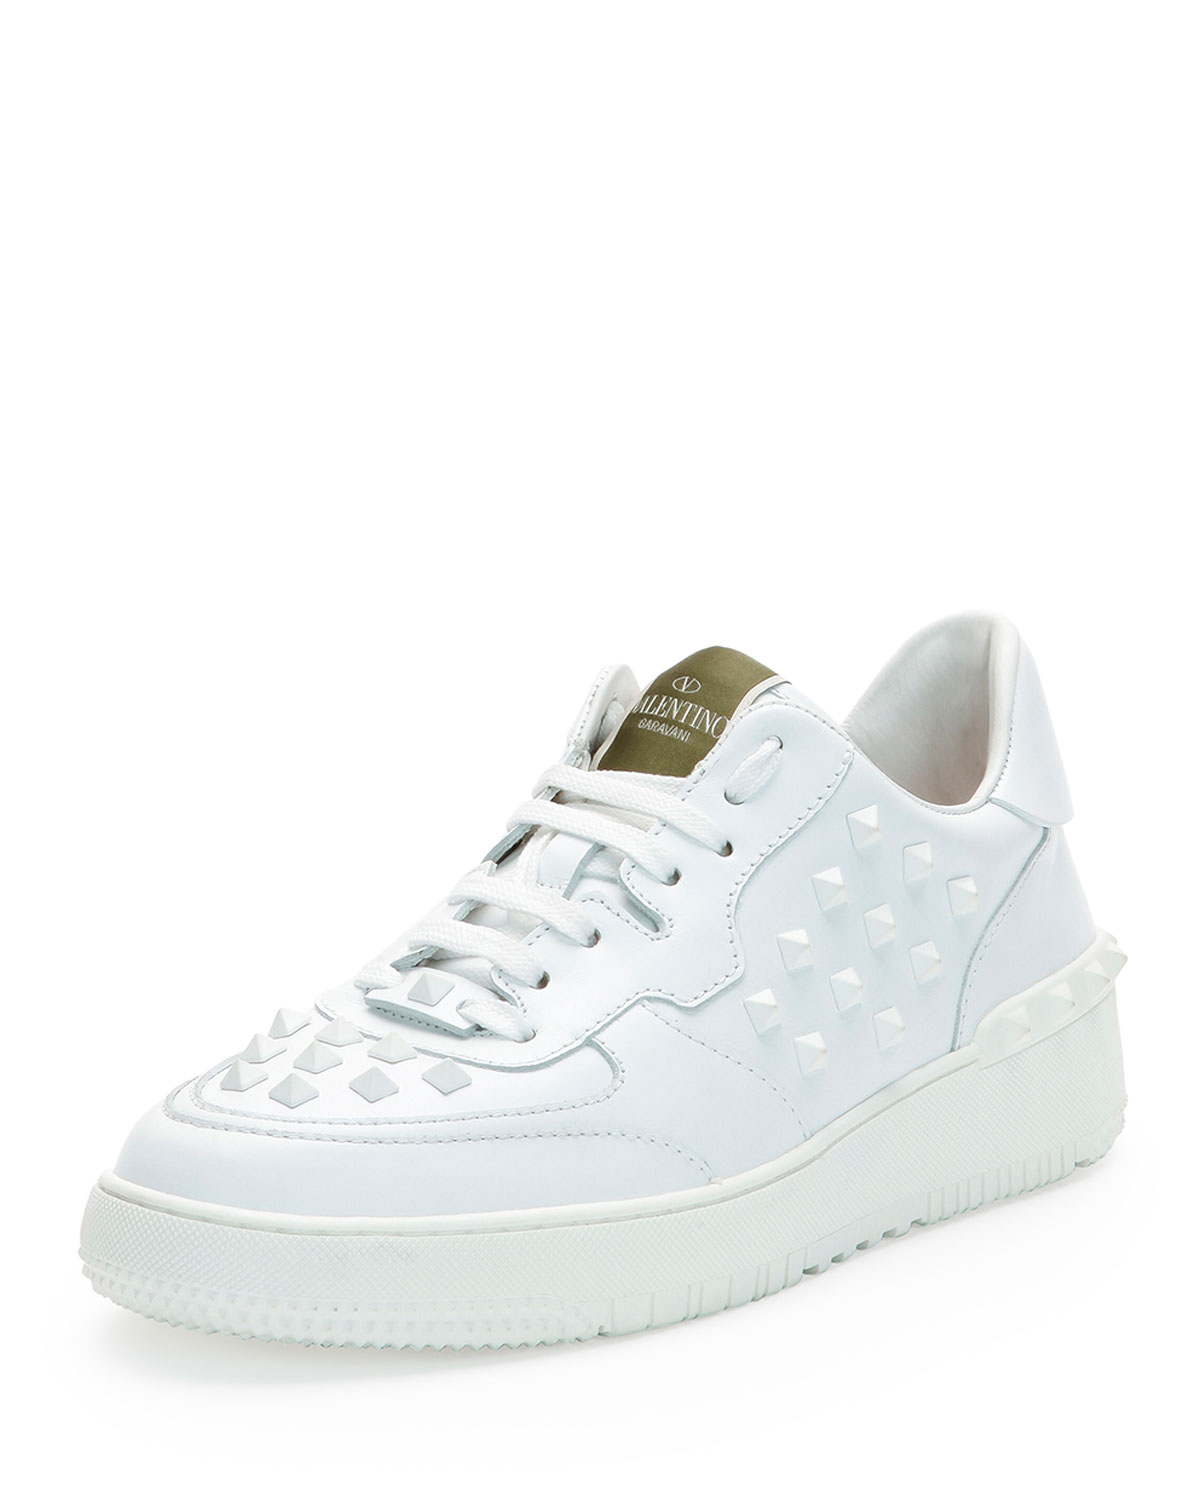 Valentino Rock Be Studded Low-Top Sneaker, White, Men's, Size: 45EU/12US